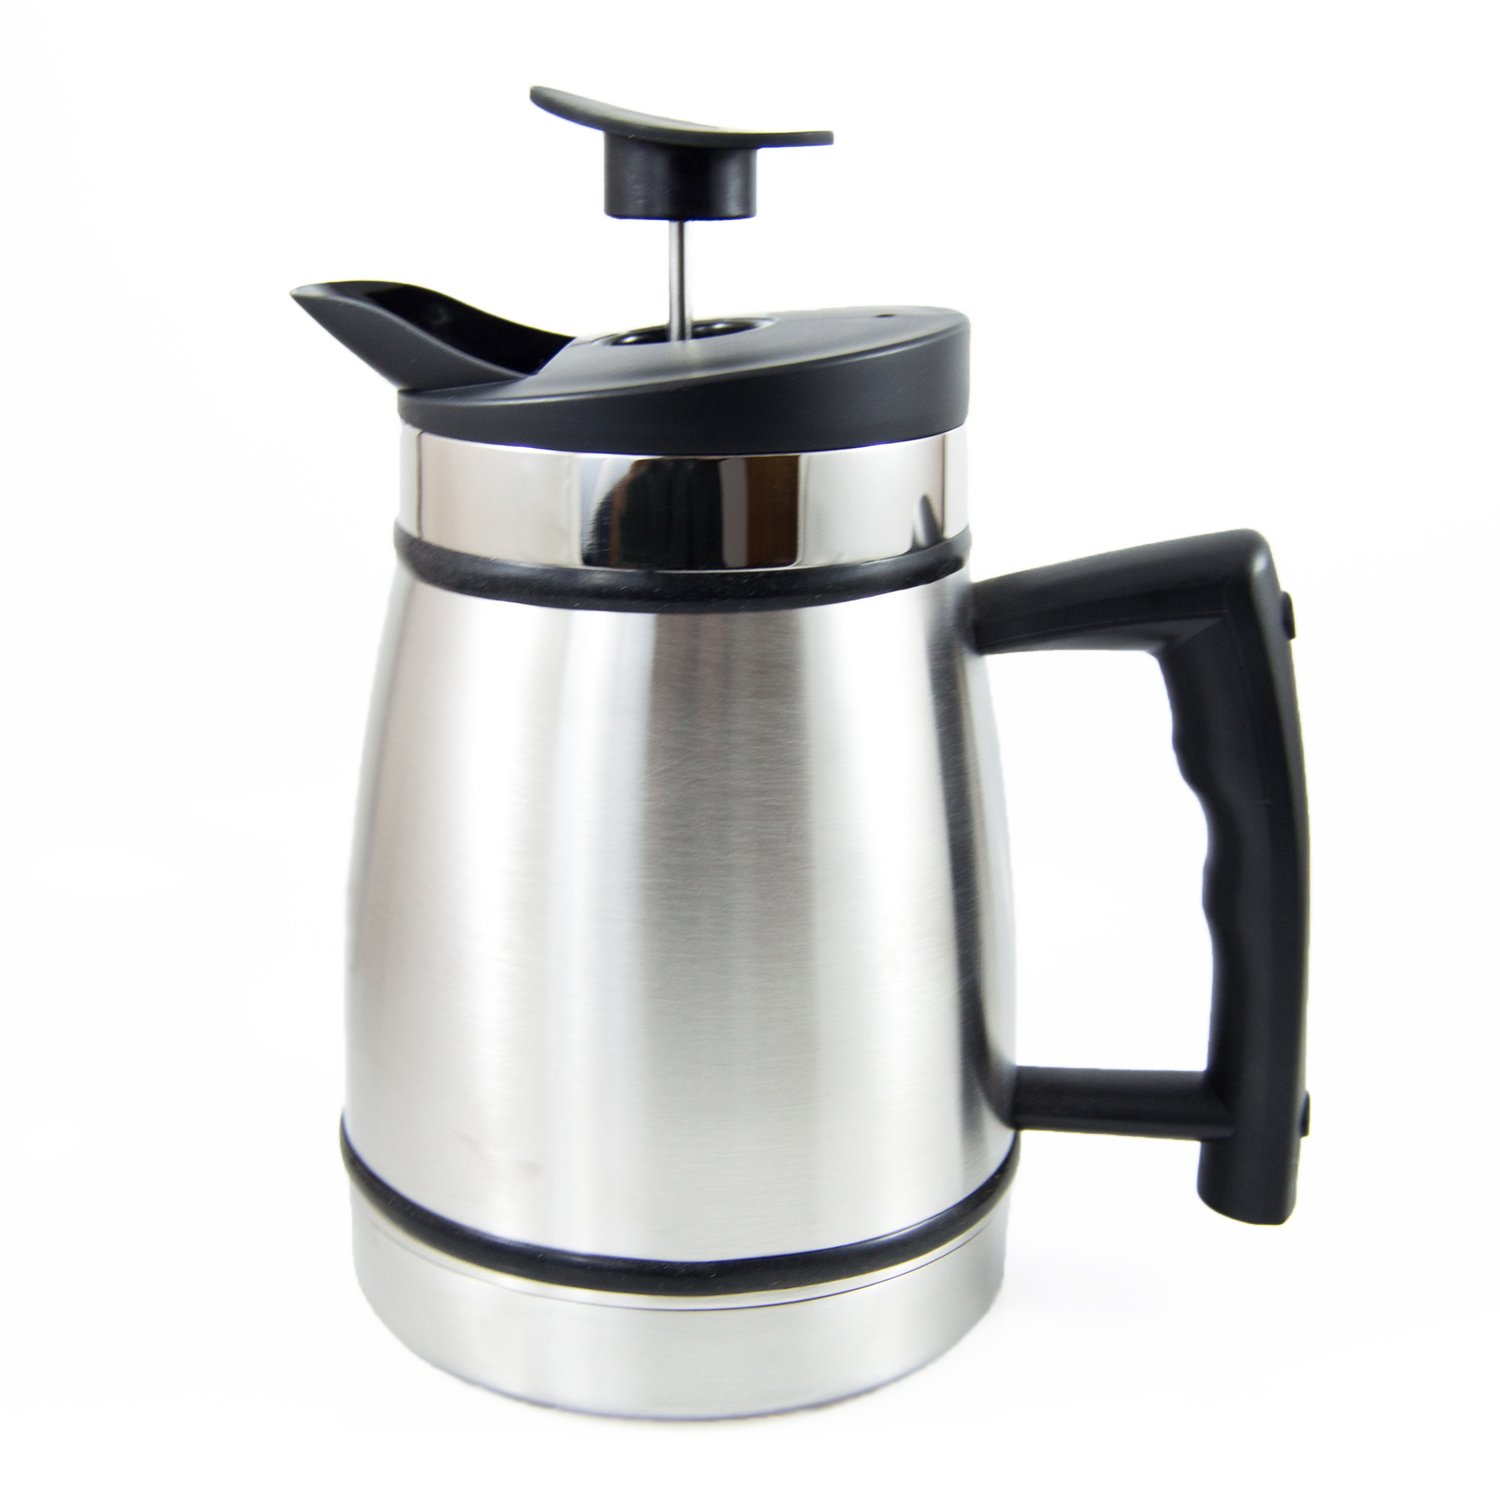 French Press Table Top Coffee and Tea Maker Carafe with Brü-Stop Technology - 32 oz - Stainless Steel - Brushed Steel